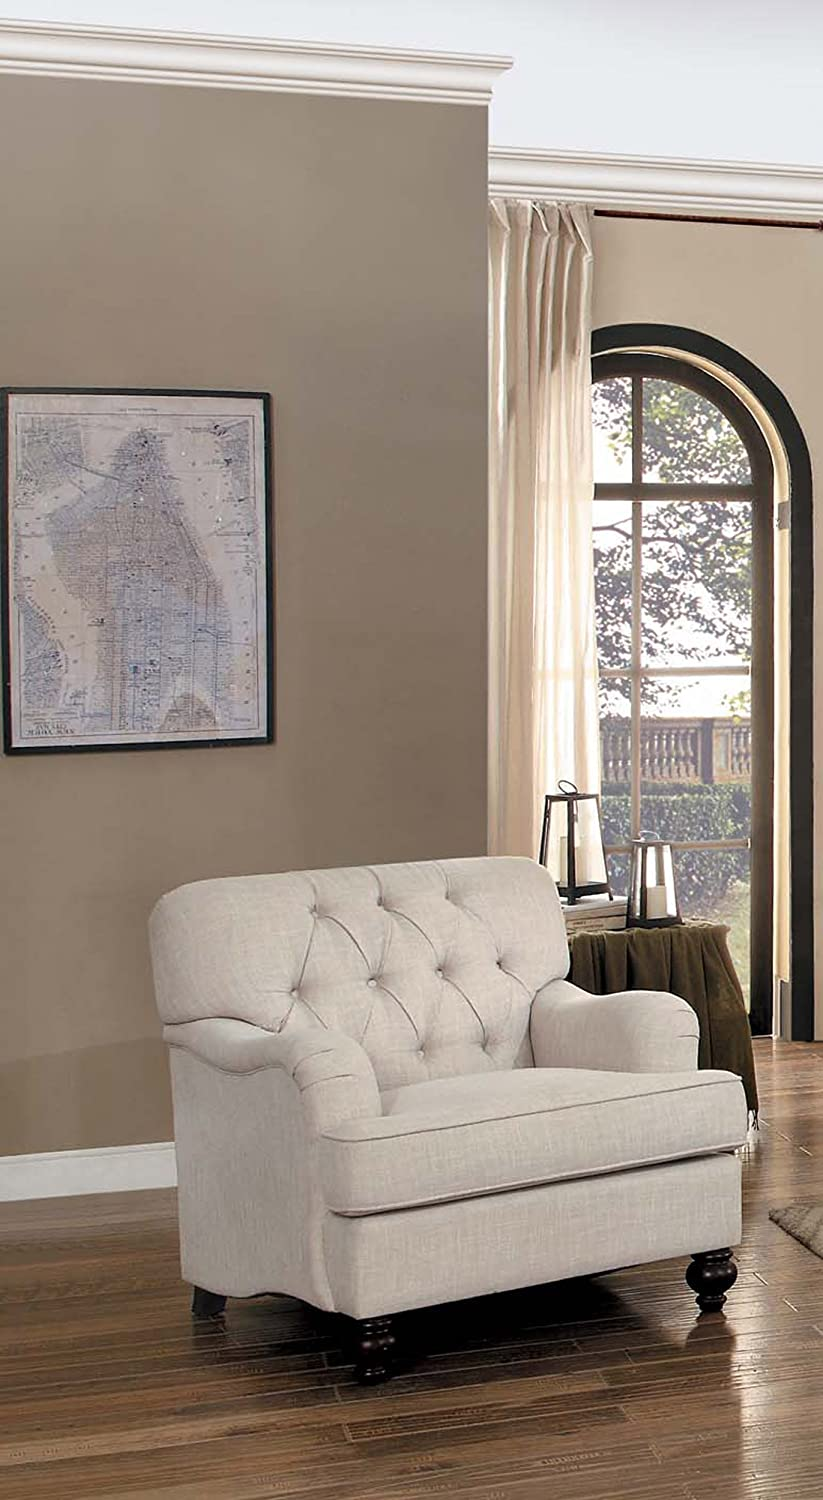 Homelegance Clemencia Classic Button Tufted English Arm Chair with Turned Legs and Linen-Like Cover, Cream